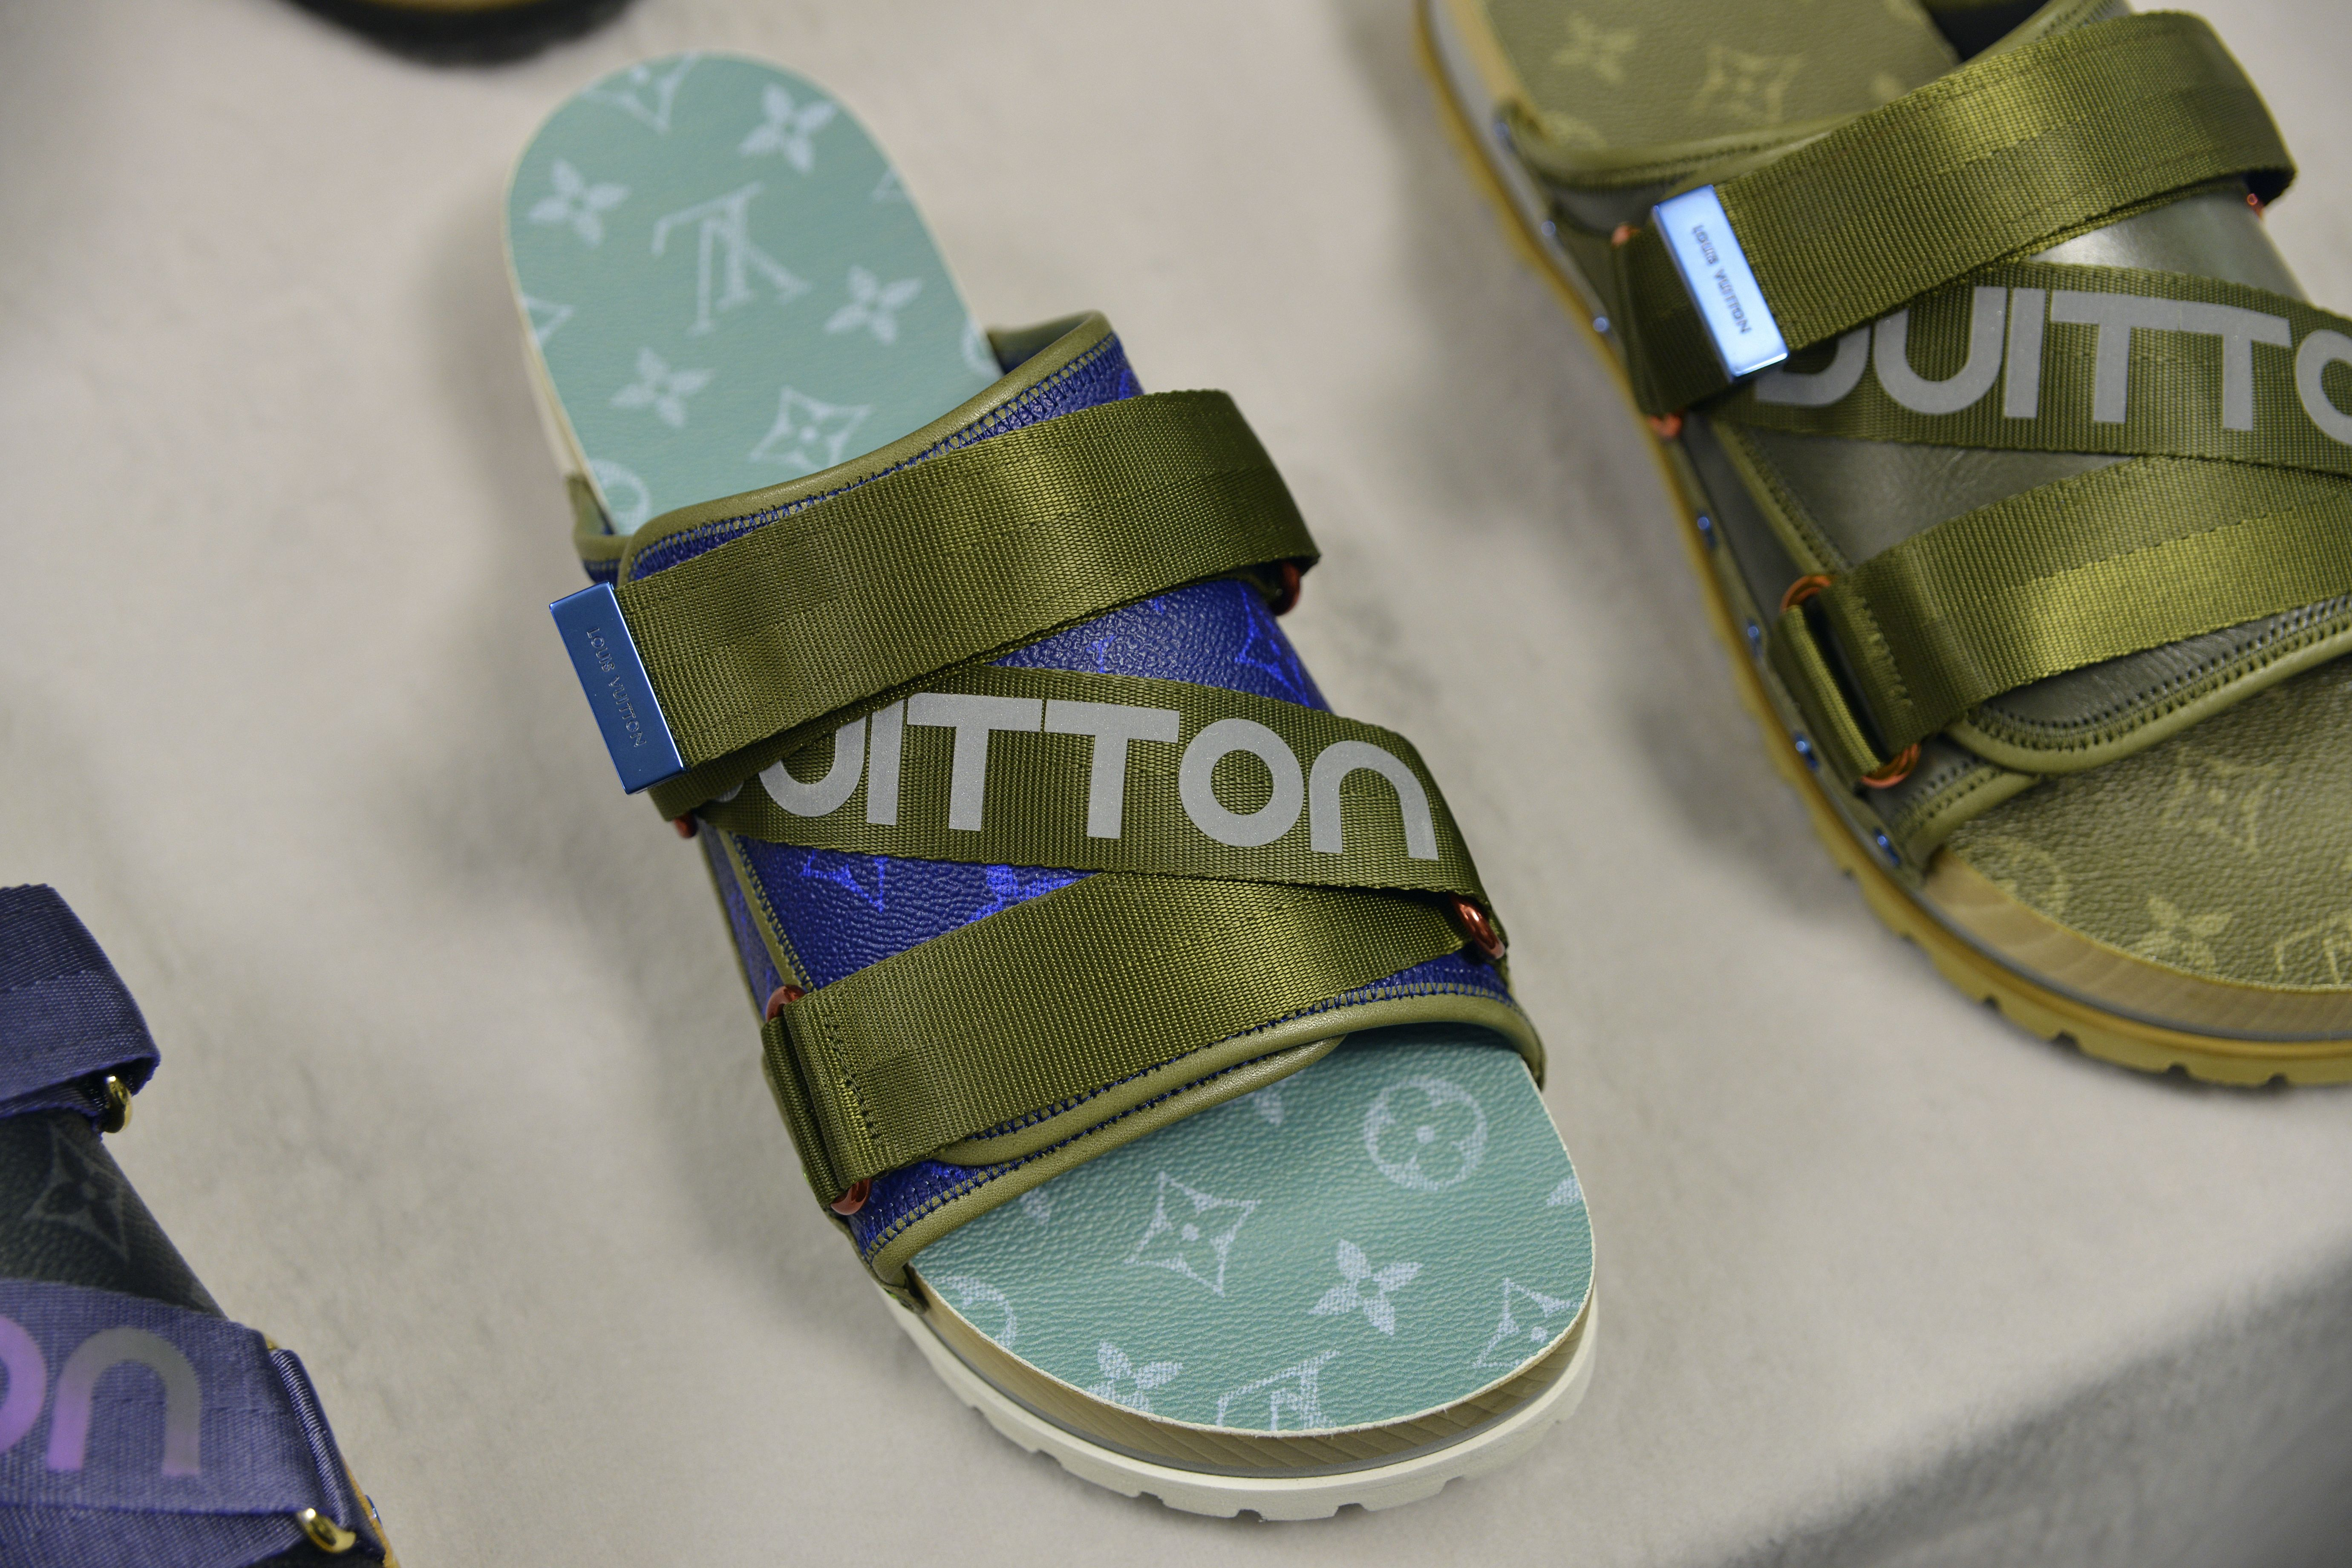 20904e882dec8 ... Gucci Men - Rubber slide sandal - 308234GIB101098 factory outlets fa4f4  2dcdd  Closer look at the details from the Louis Vuitton Spring-Summer 2018  ...